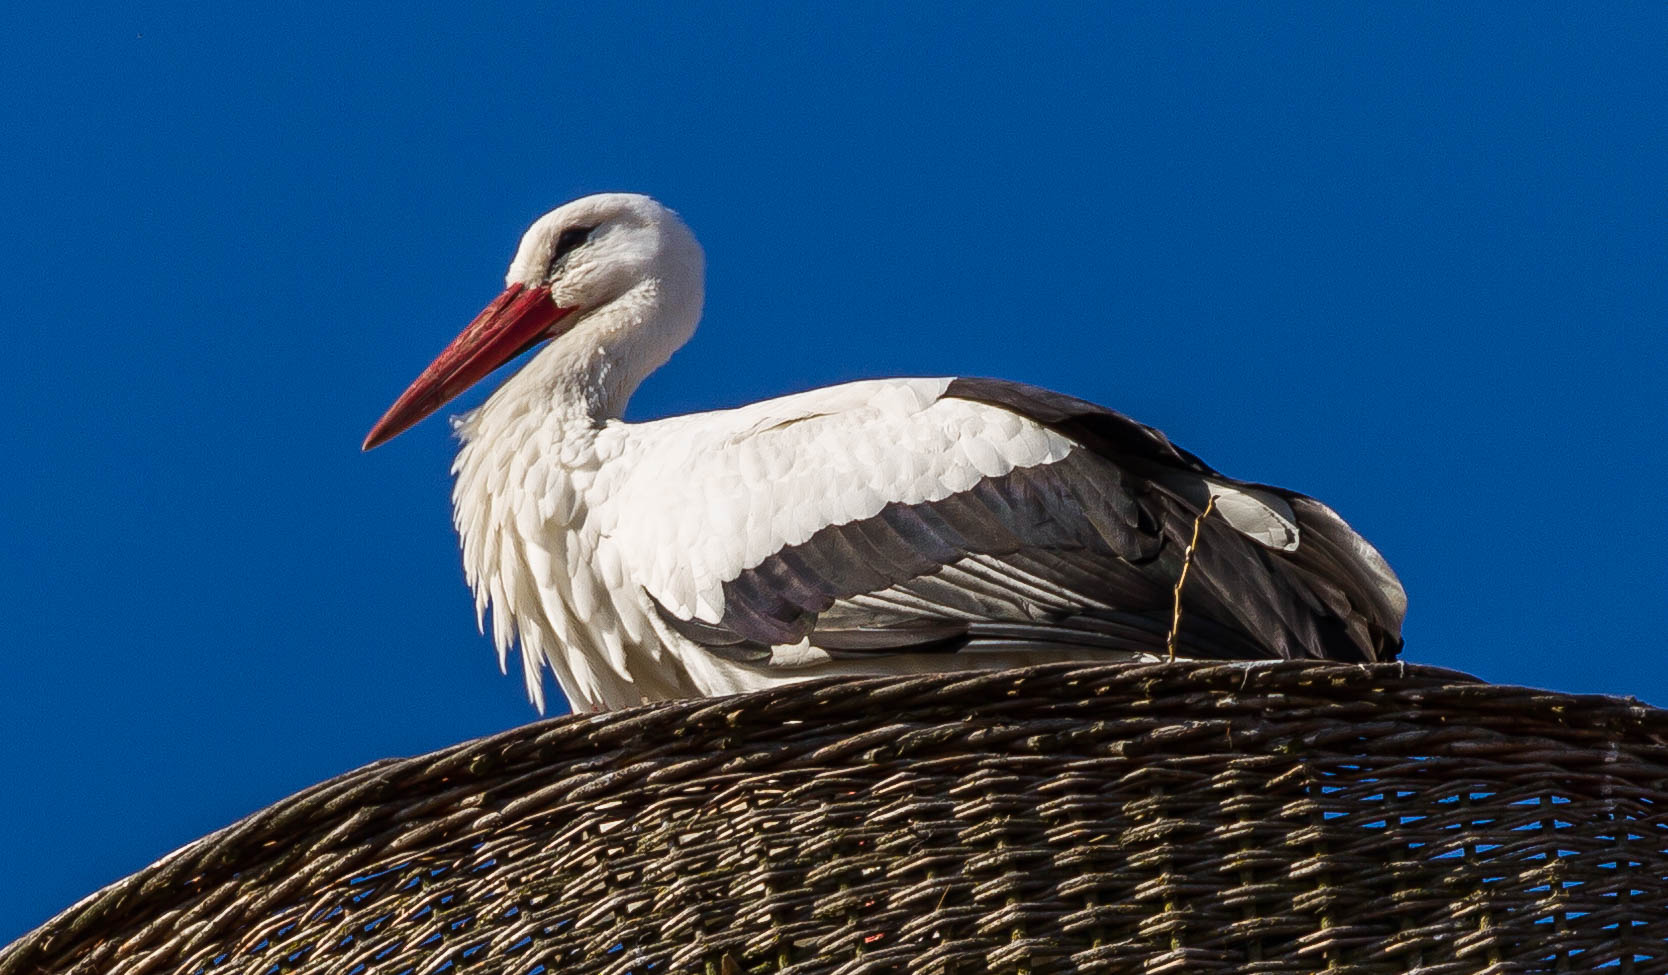 The Storch is waiting....